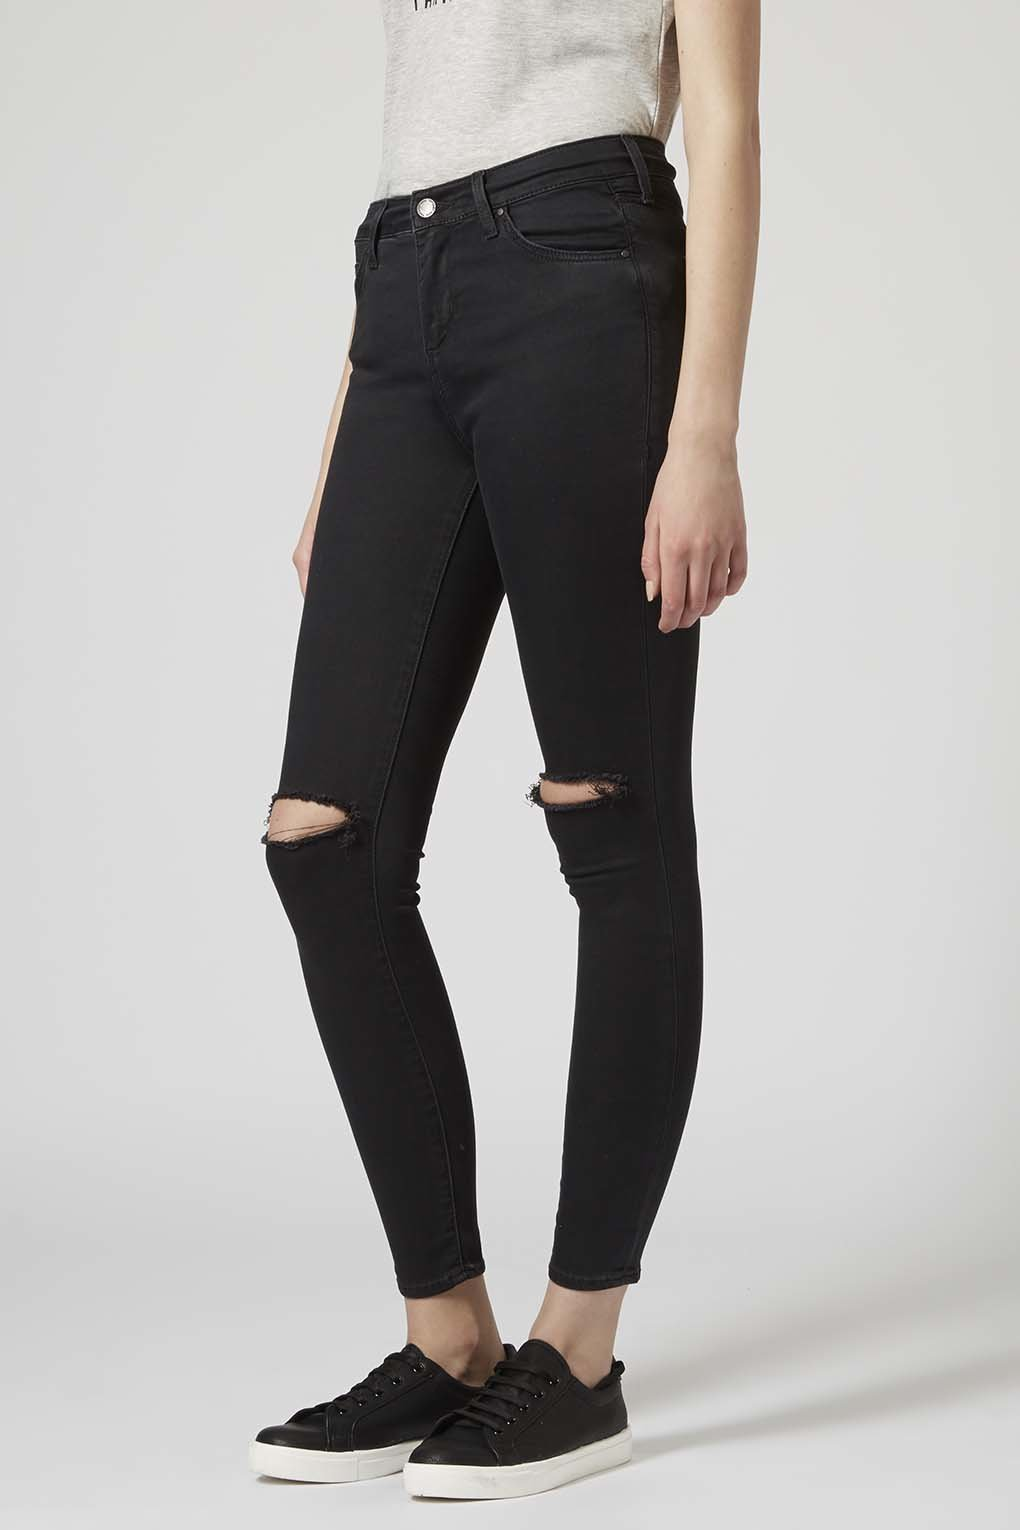 Washed Black Leigh Jeans - Topshop